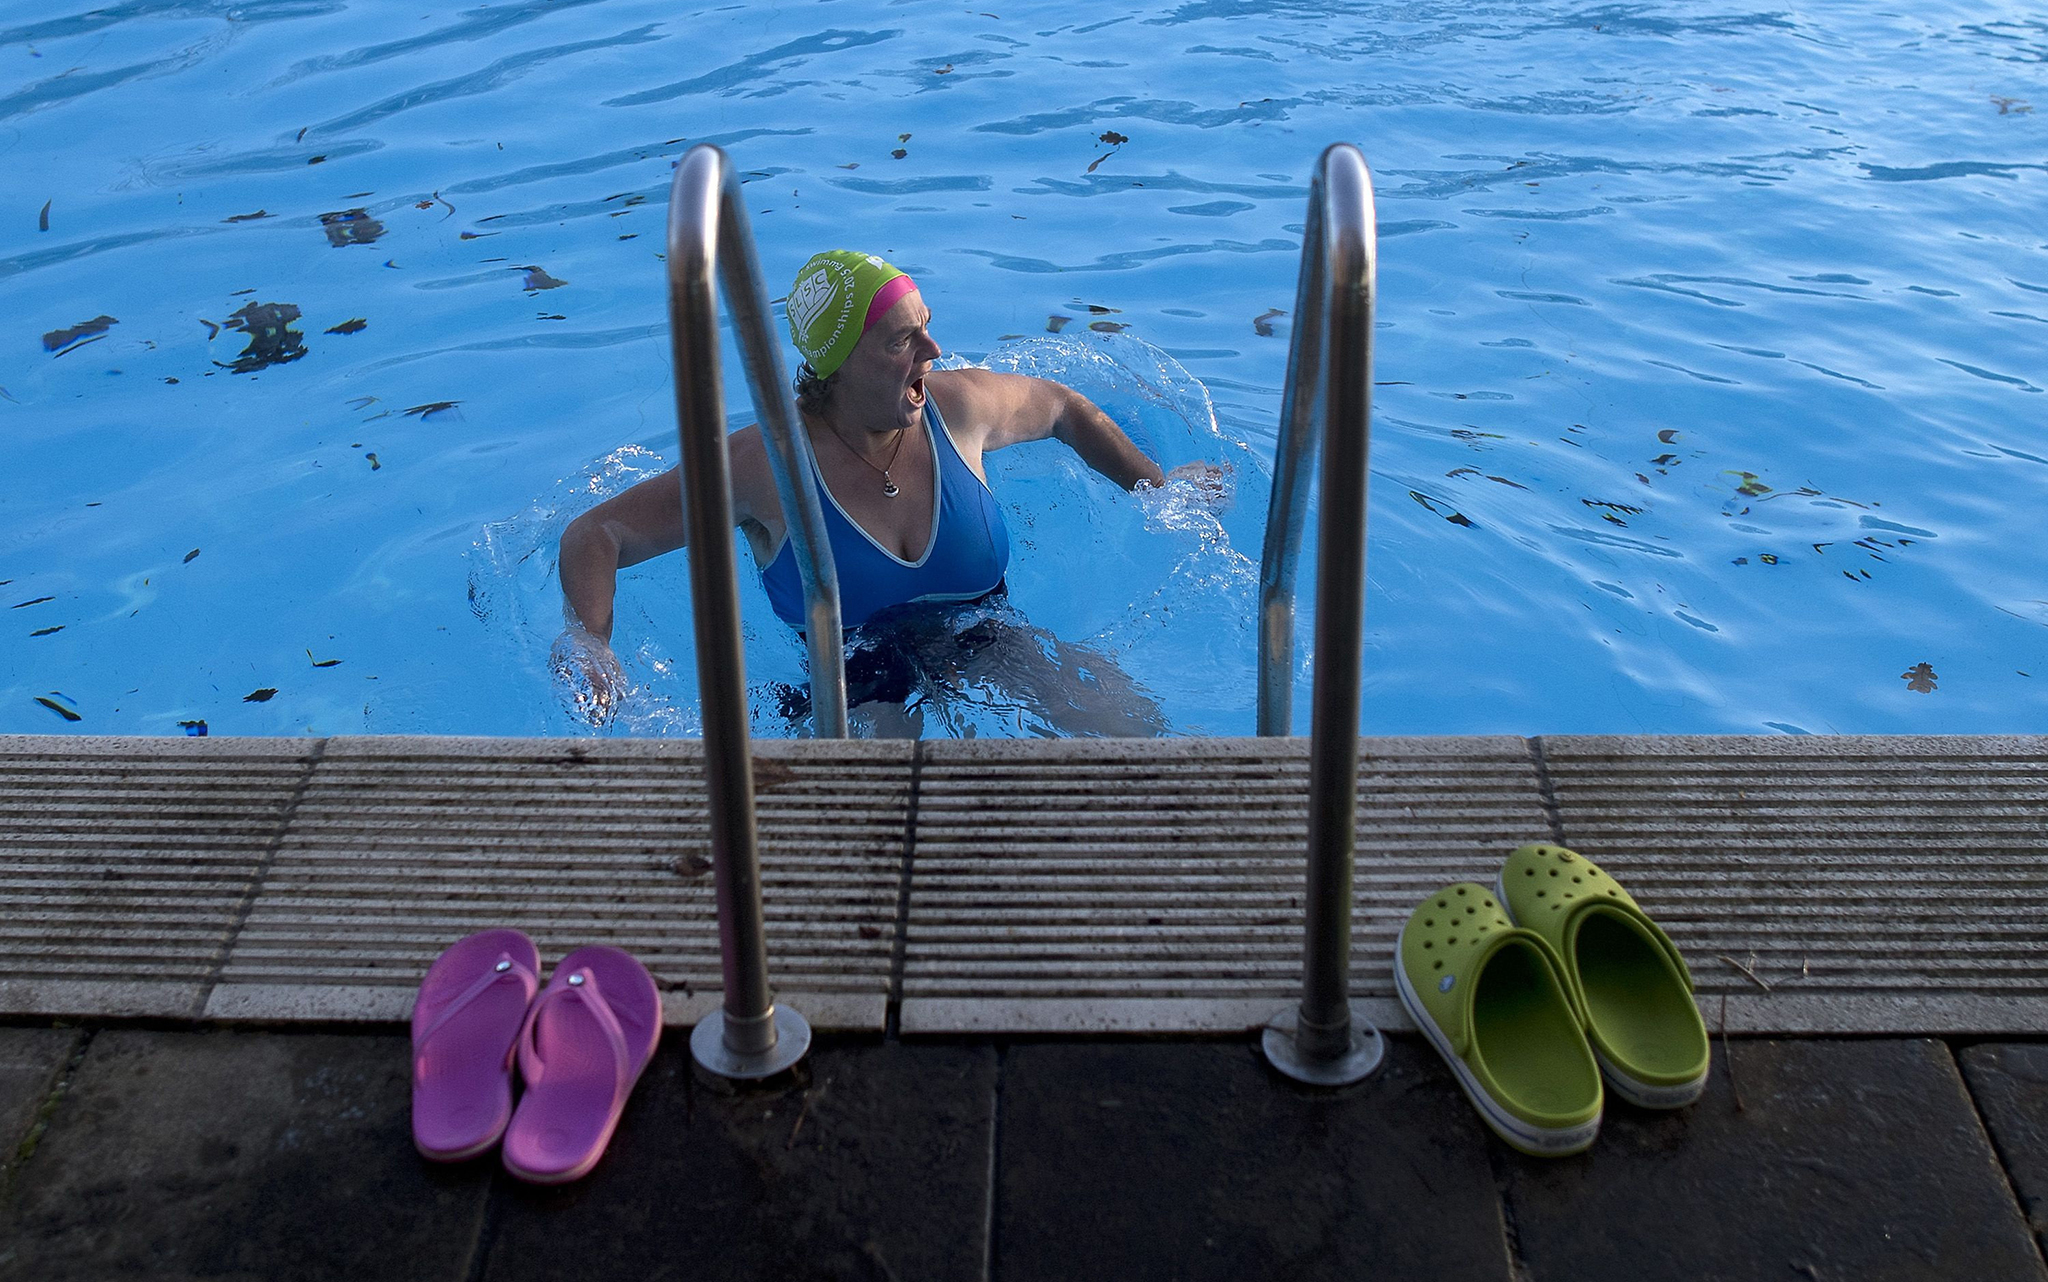 A swimmer reacts after getting into the ice cold water at Tooting Bec Lido, in south west London on January 5, 2017, at sunrise on a freezing winter morning